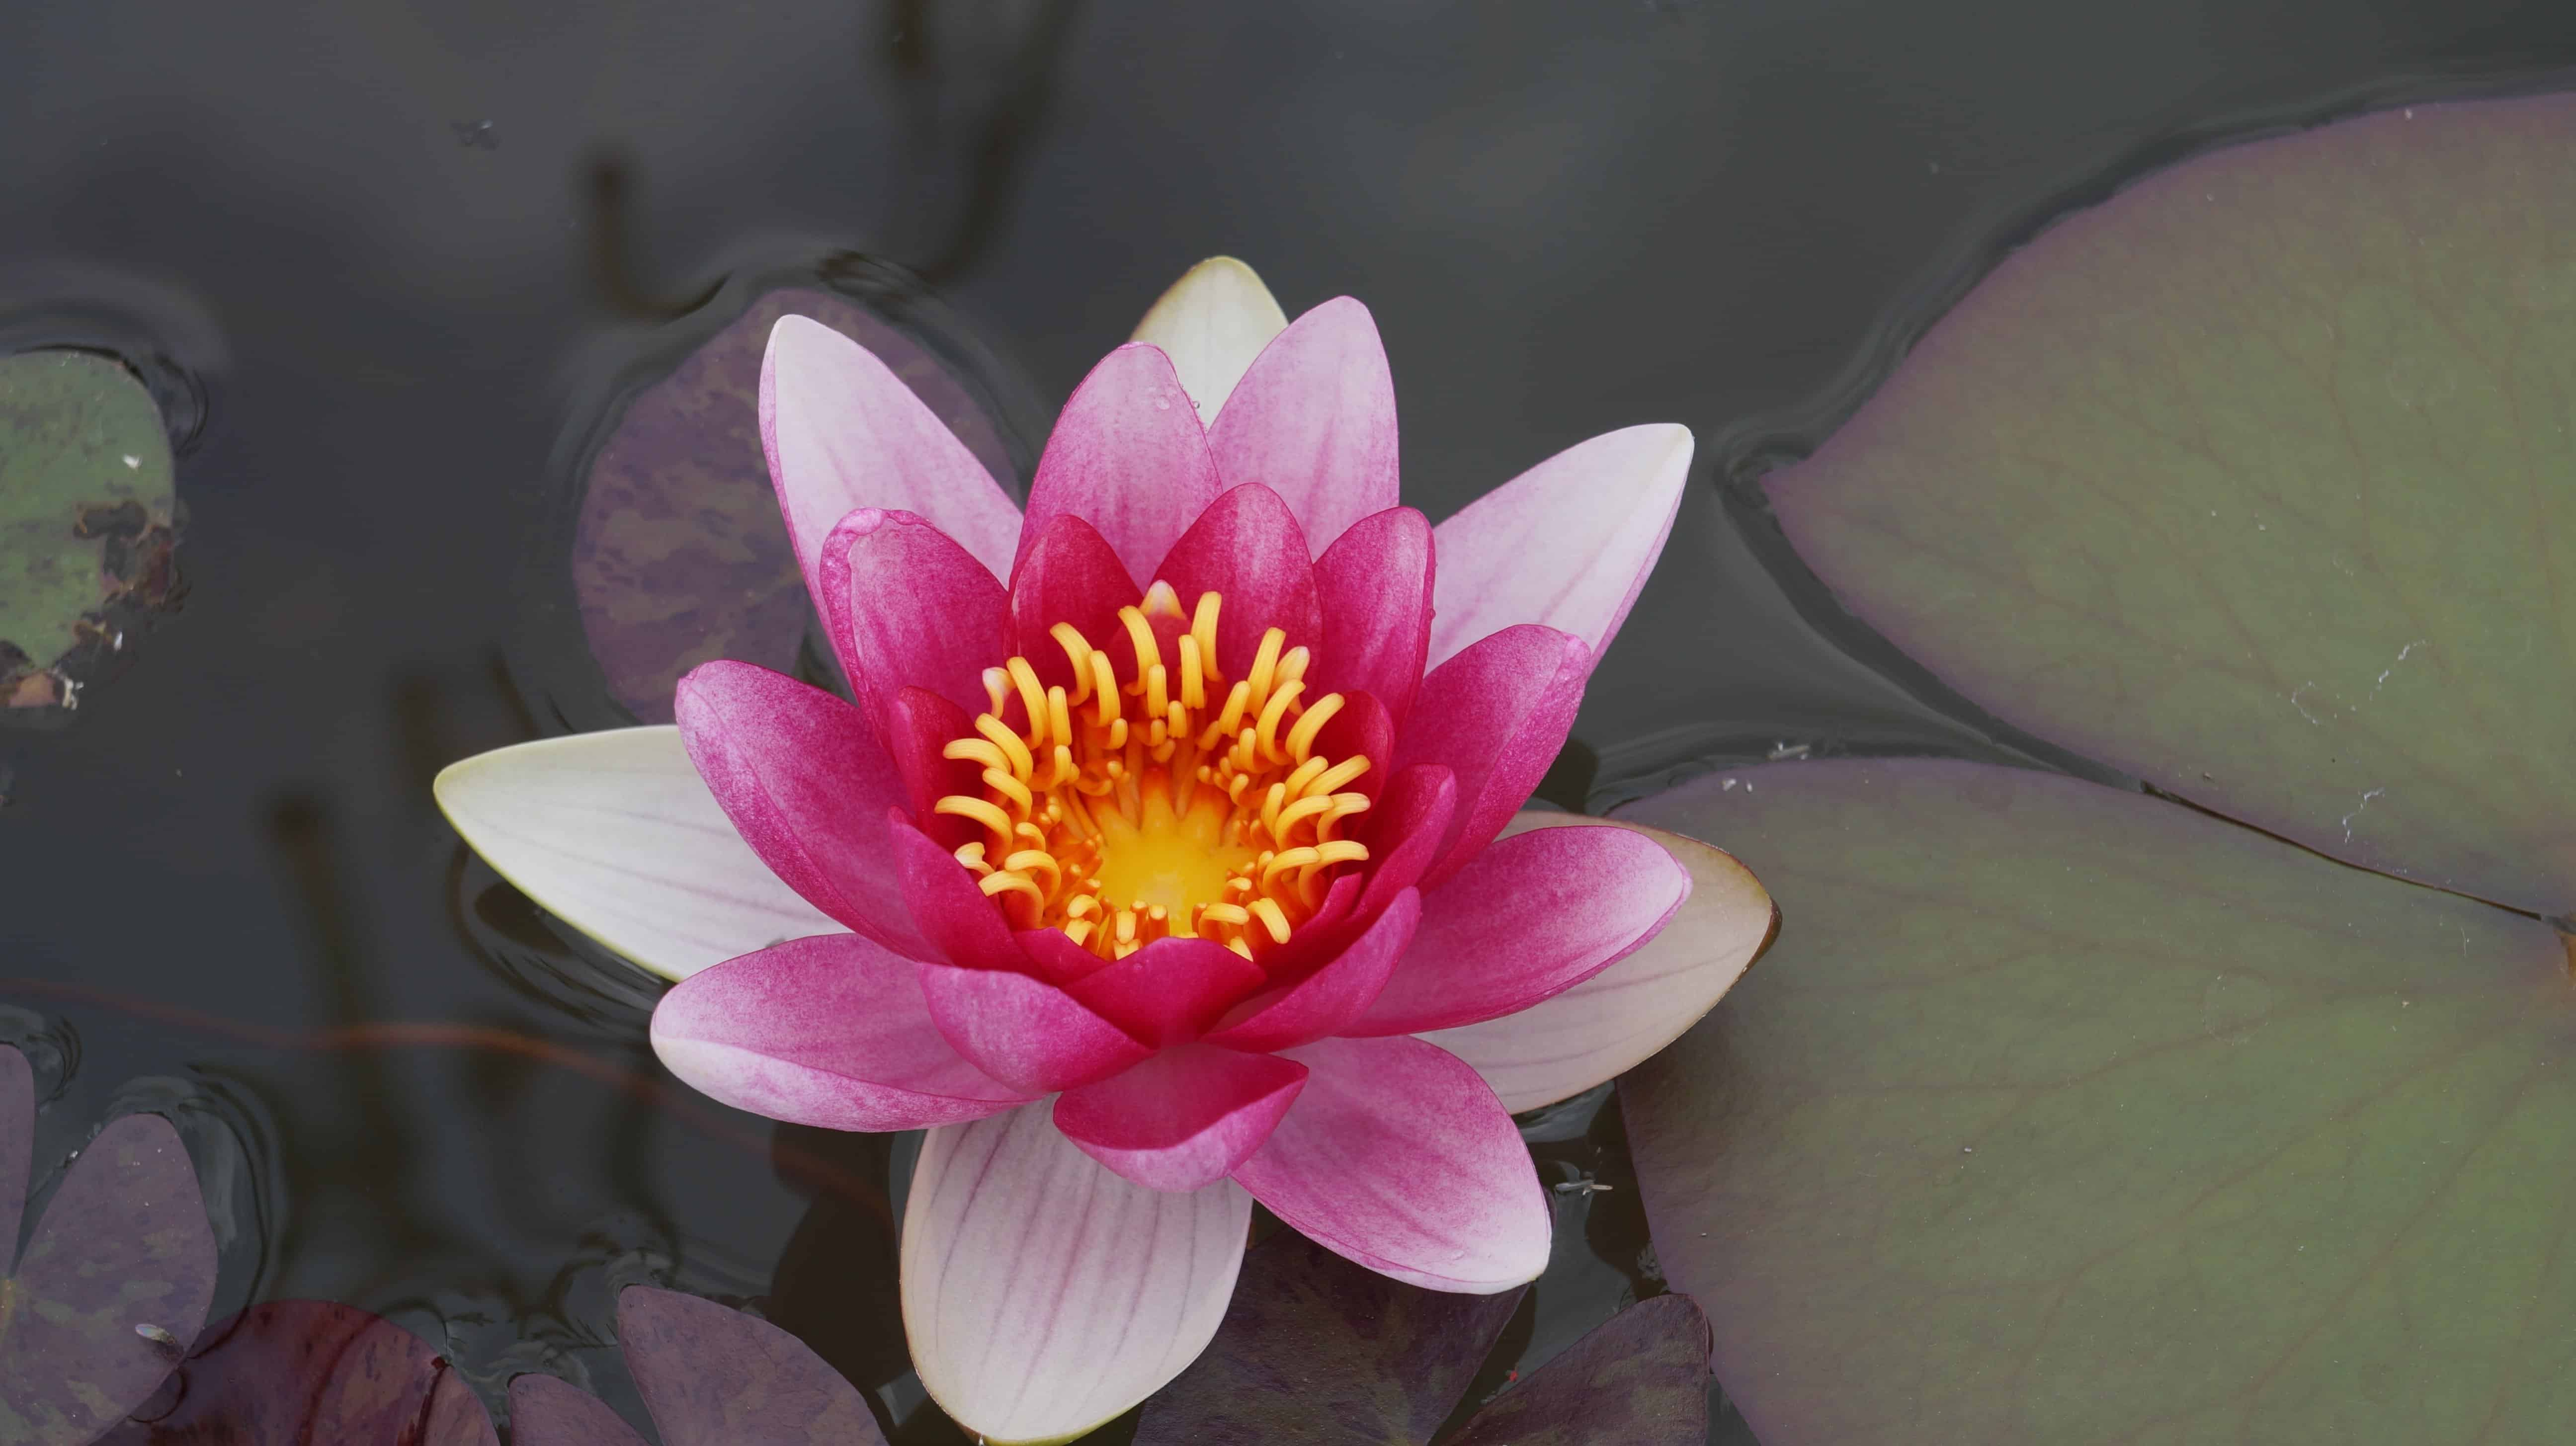 Free picture horticulture flora green leaf lotus flower pink horticulture flora green leaf lotus flower pink petal blossom plant izmirmasajfo